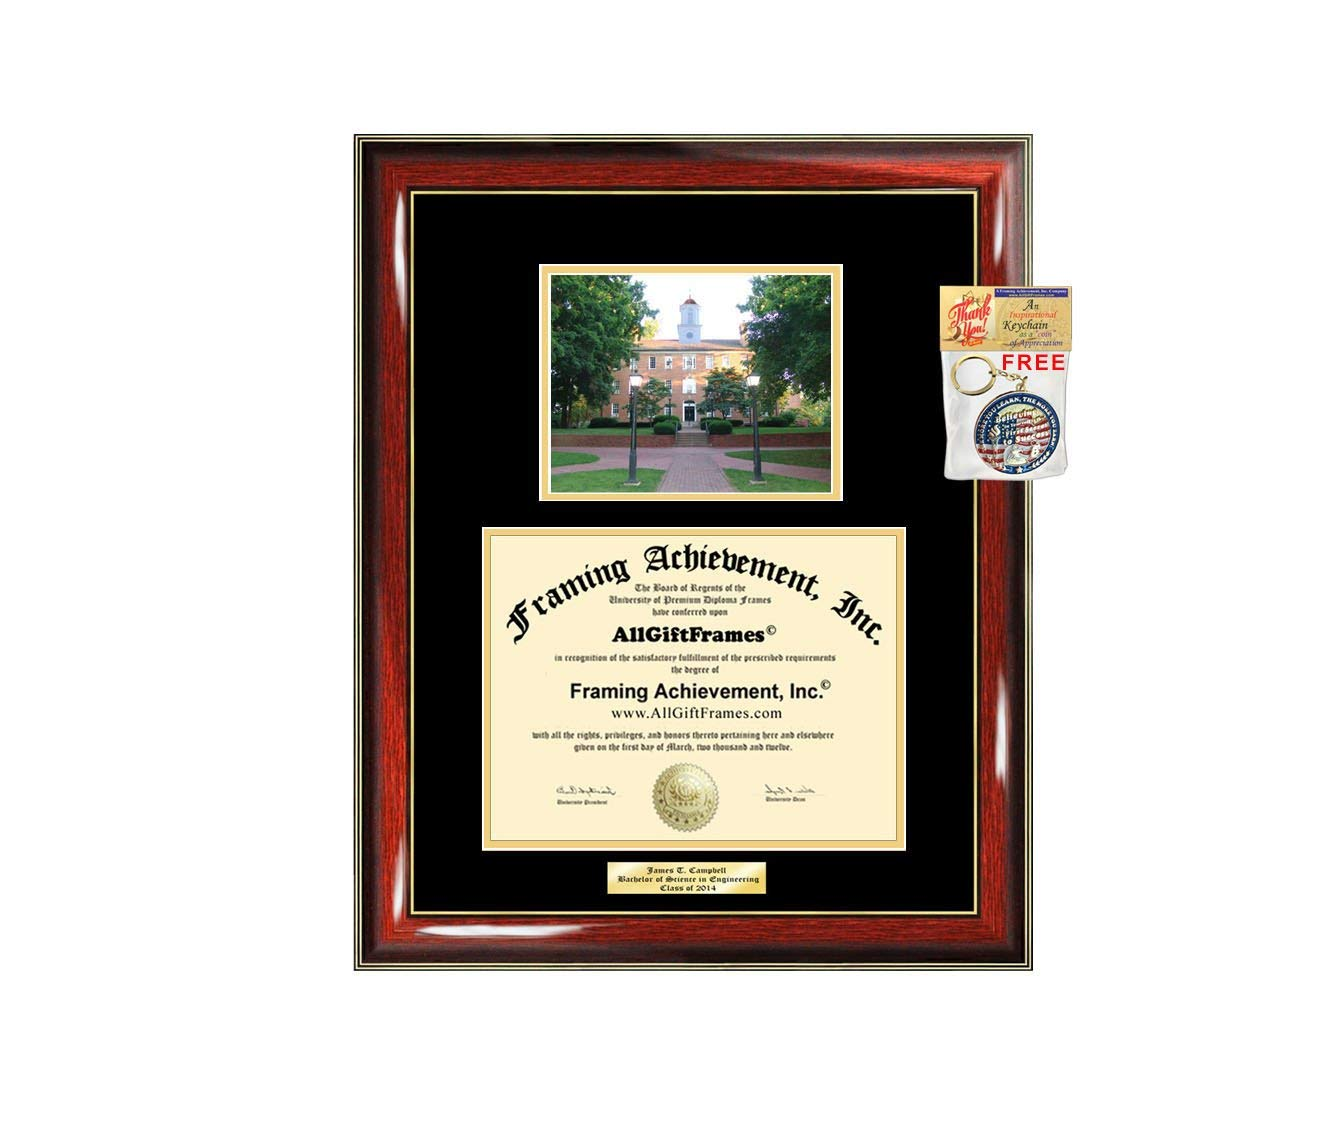 Diploma Frame Ohio University Graduation Gift Idea Engraved Picture Frames Engraving Degree Cheap Graduate Bachelor Masters MBA PHD Doctorate School